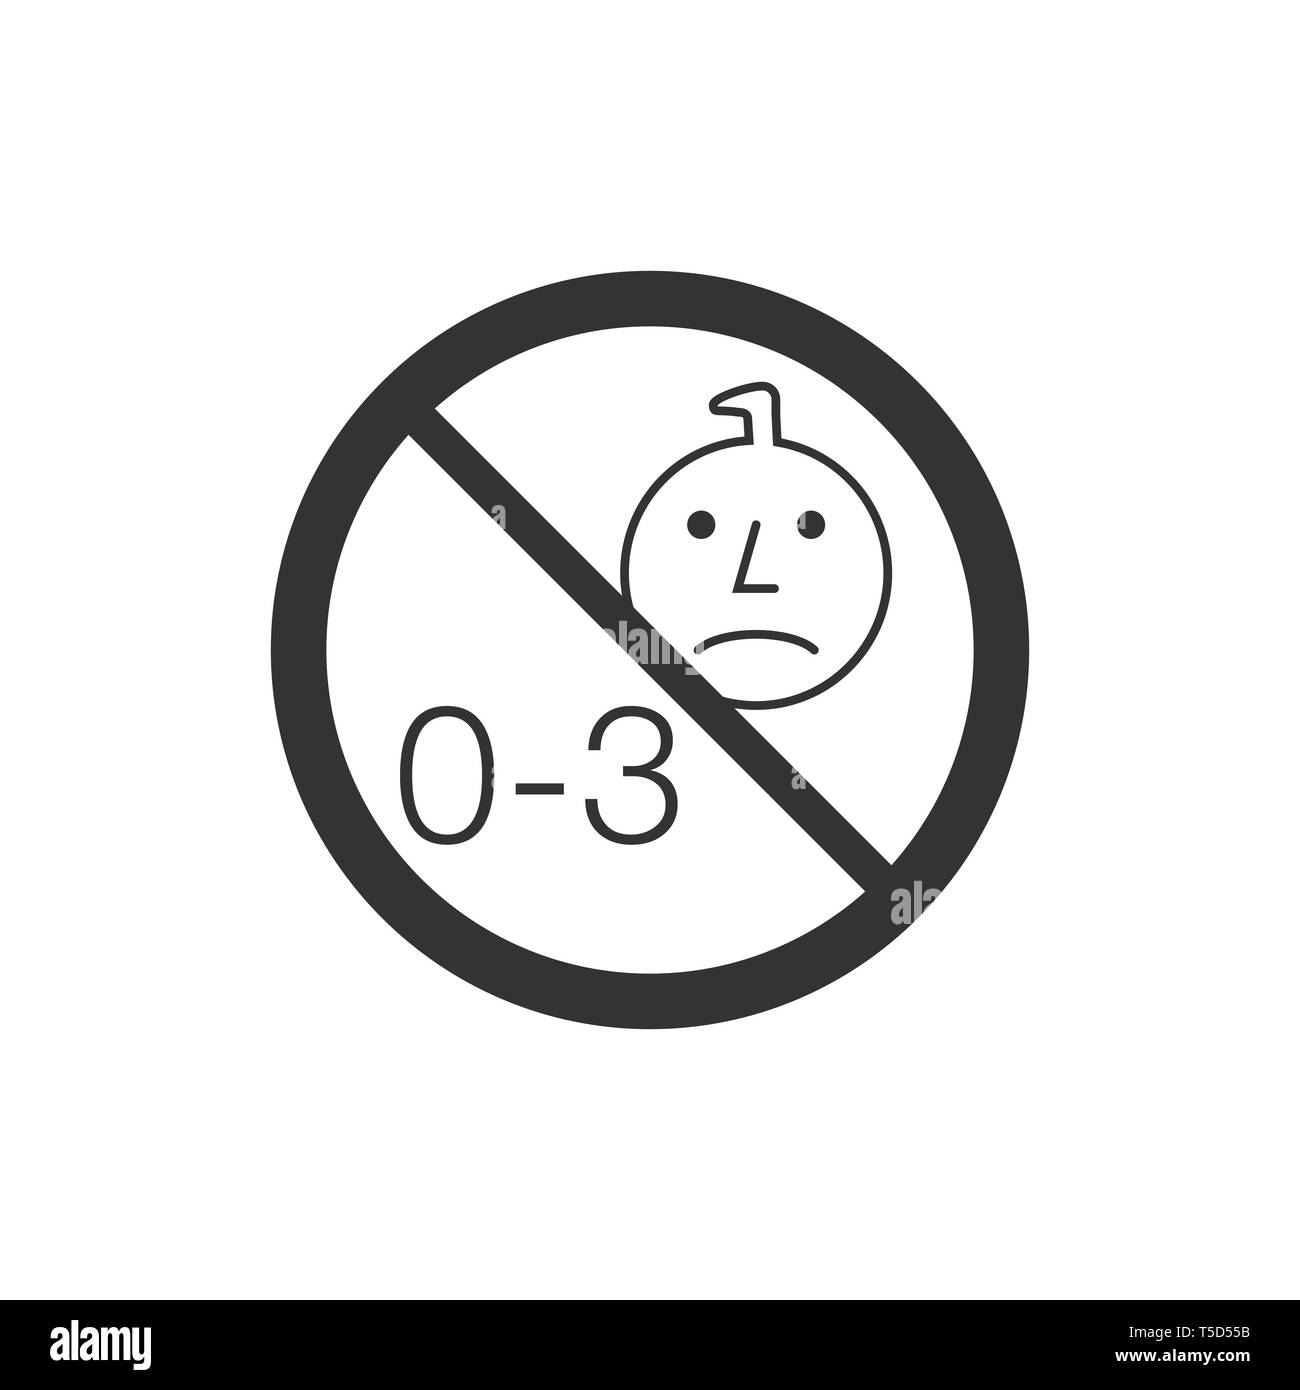 Not suitable for children under 3 years old 2 - Stock Vector